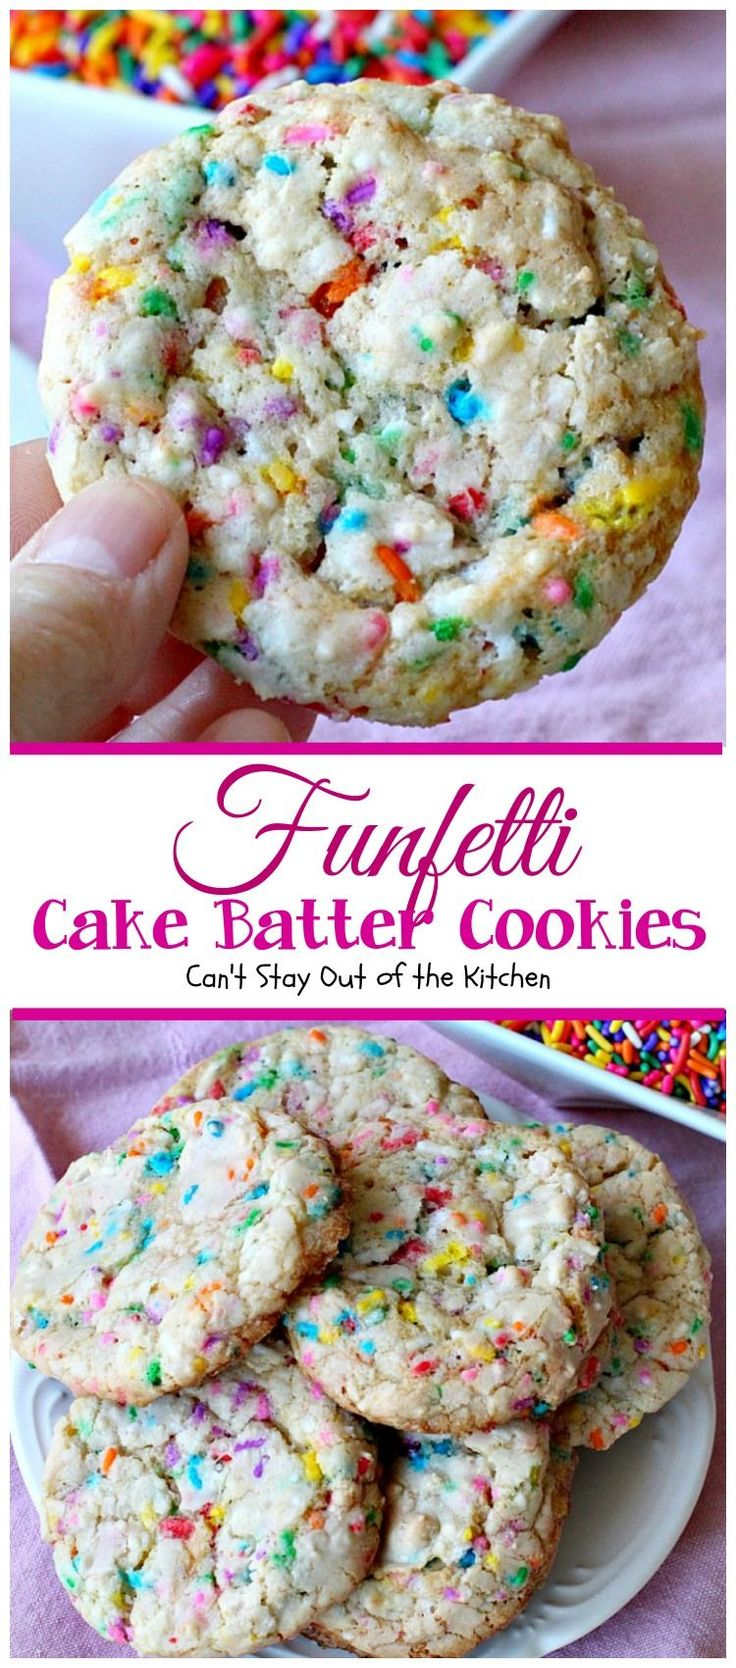 How To Make Cookies Out Of Pillsbury Cake Mix